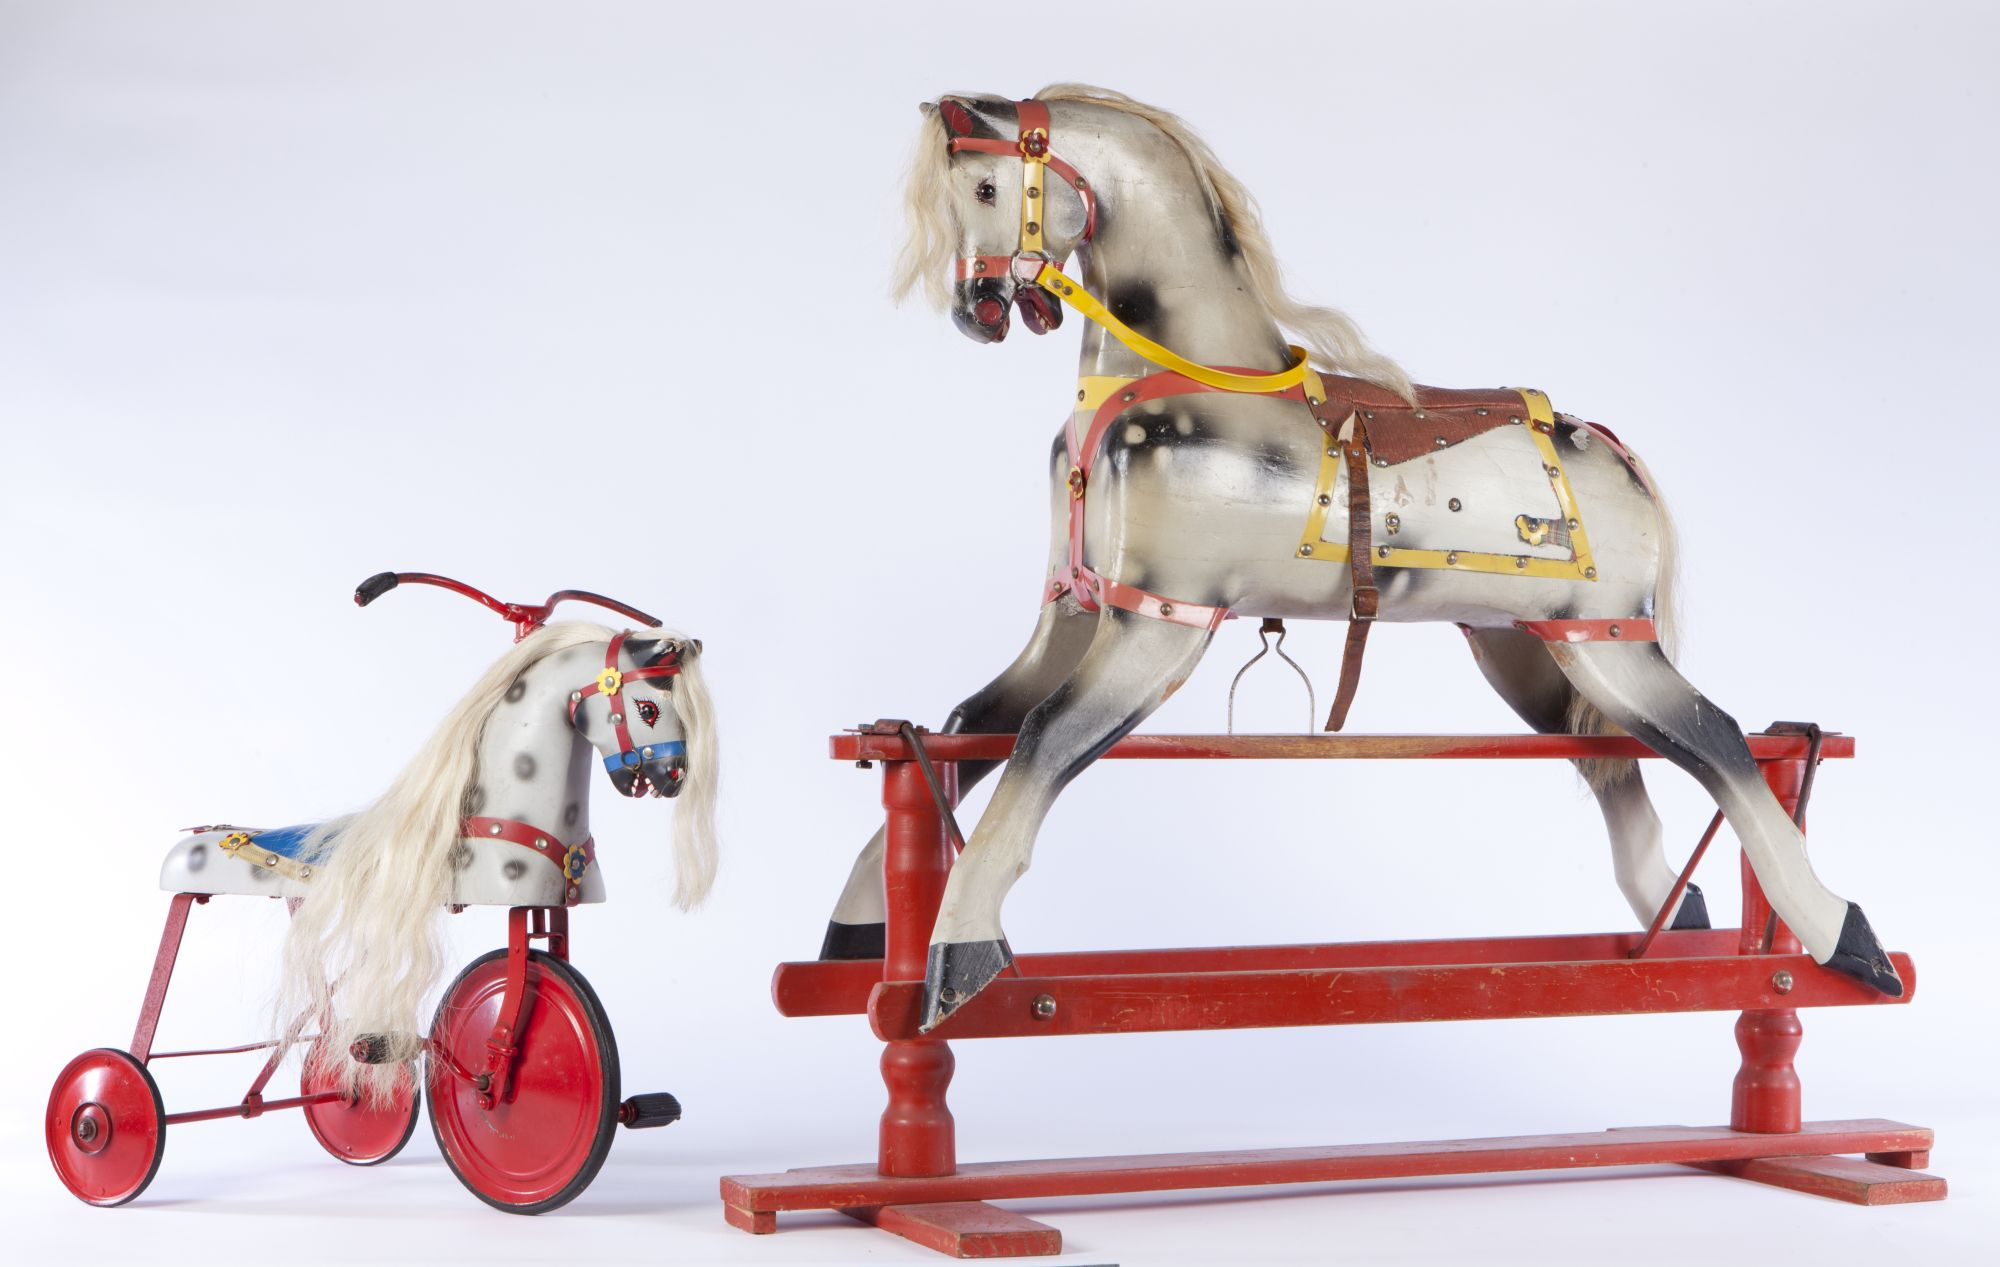 Two red vintage toys.